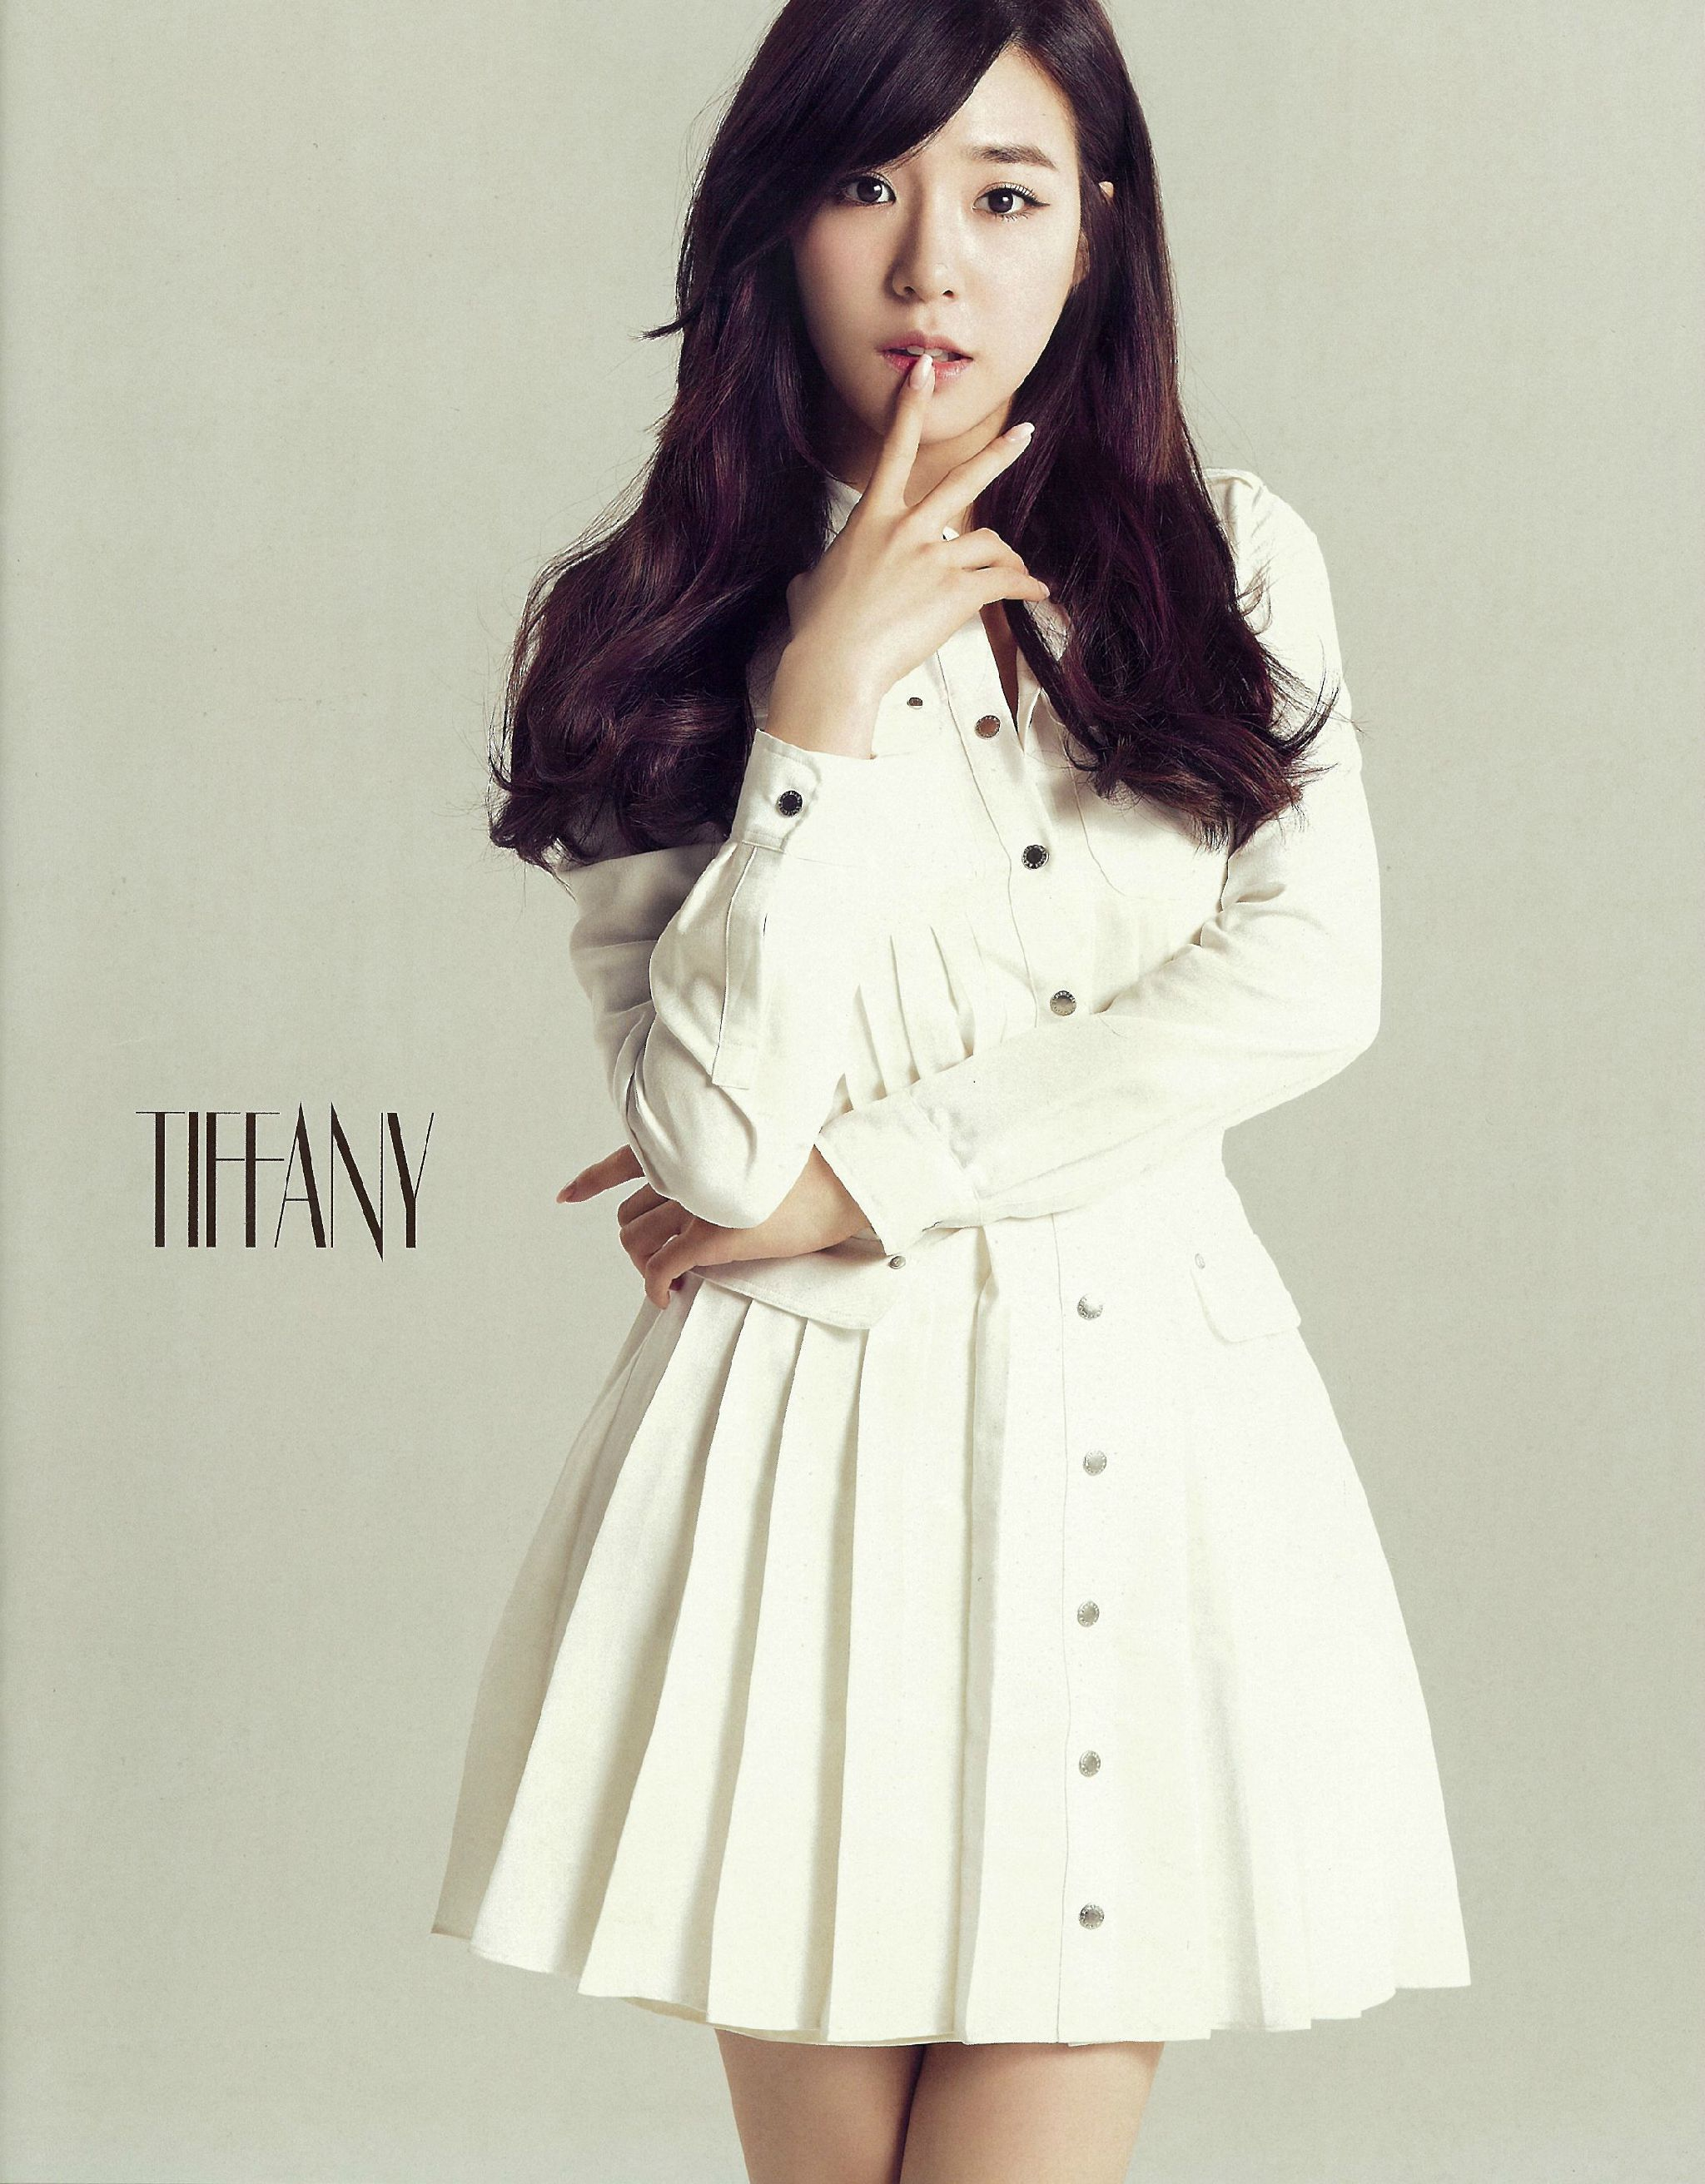 Sone snsd quotes o -  140606 Tiffany Snsd New Picture For Sone Note Vol 3